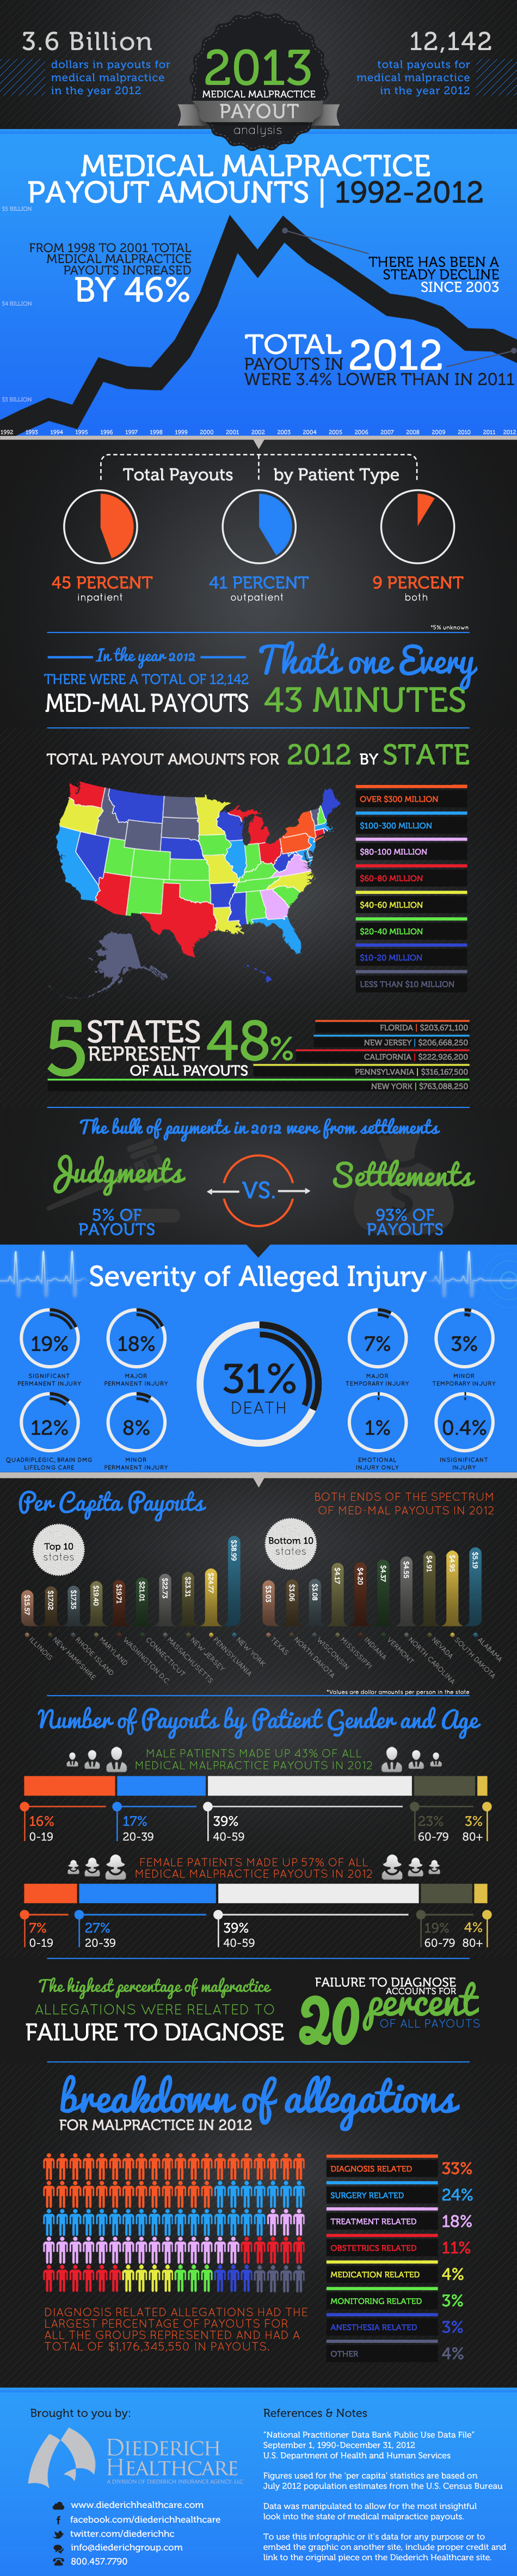 2013-medical-malpractice-payout-analysis_5182de625020c